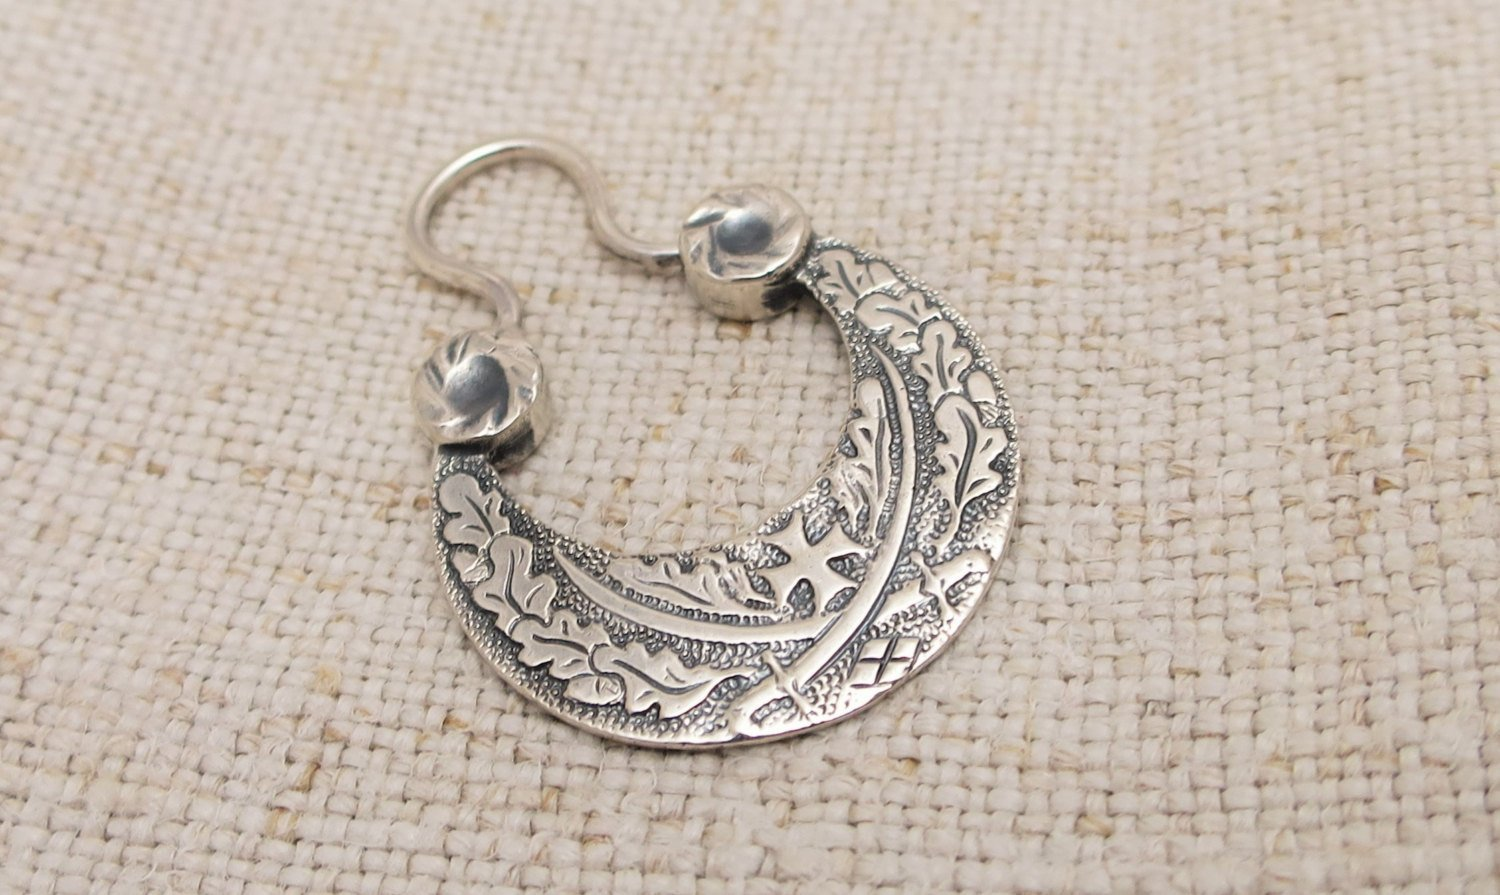 Earring for men viking celtic slavic cossacks sabre sword style sterling silver 3.29 gm handcrafted earrings for Men